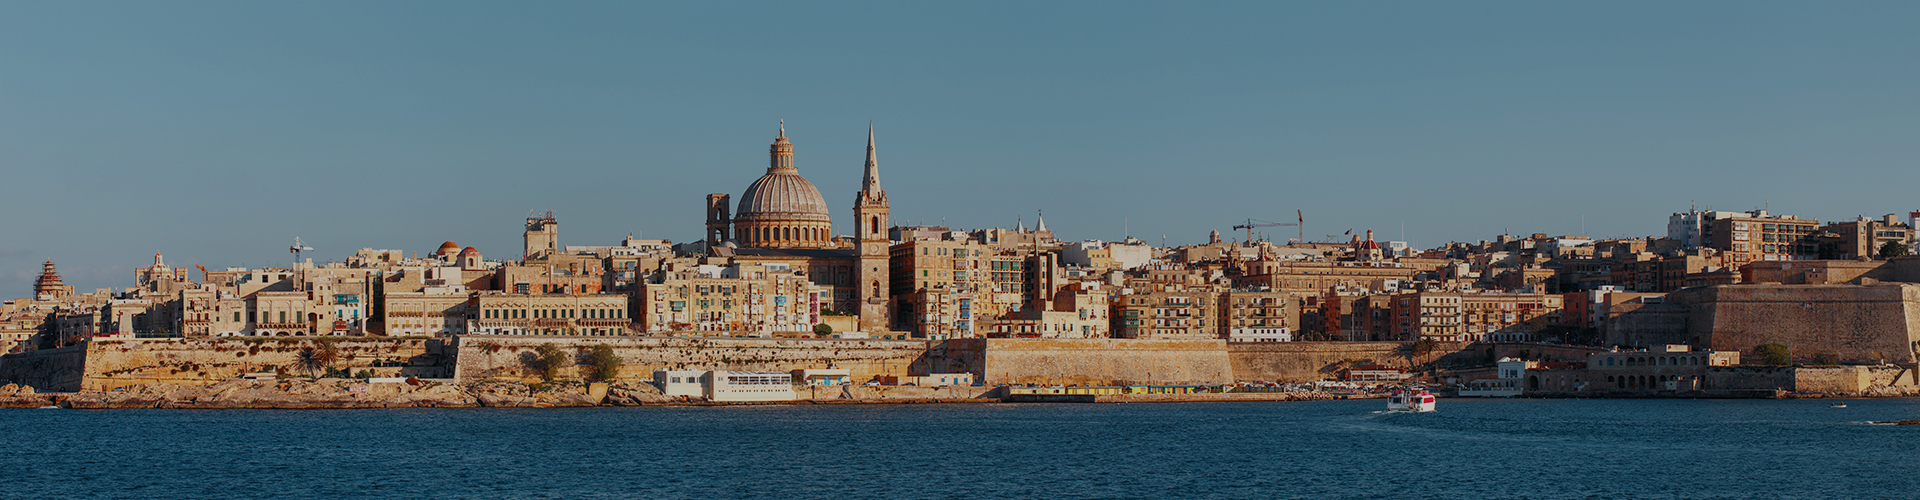 Landmark photograph of Malta